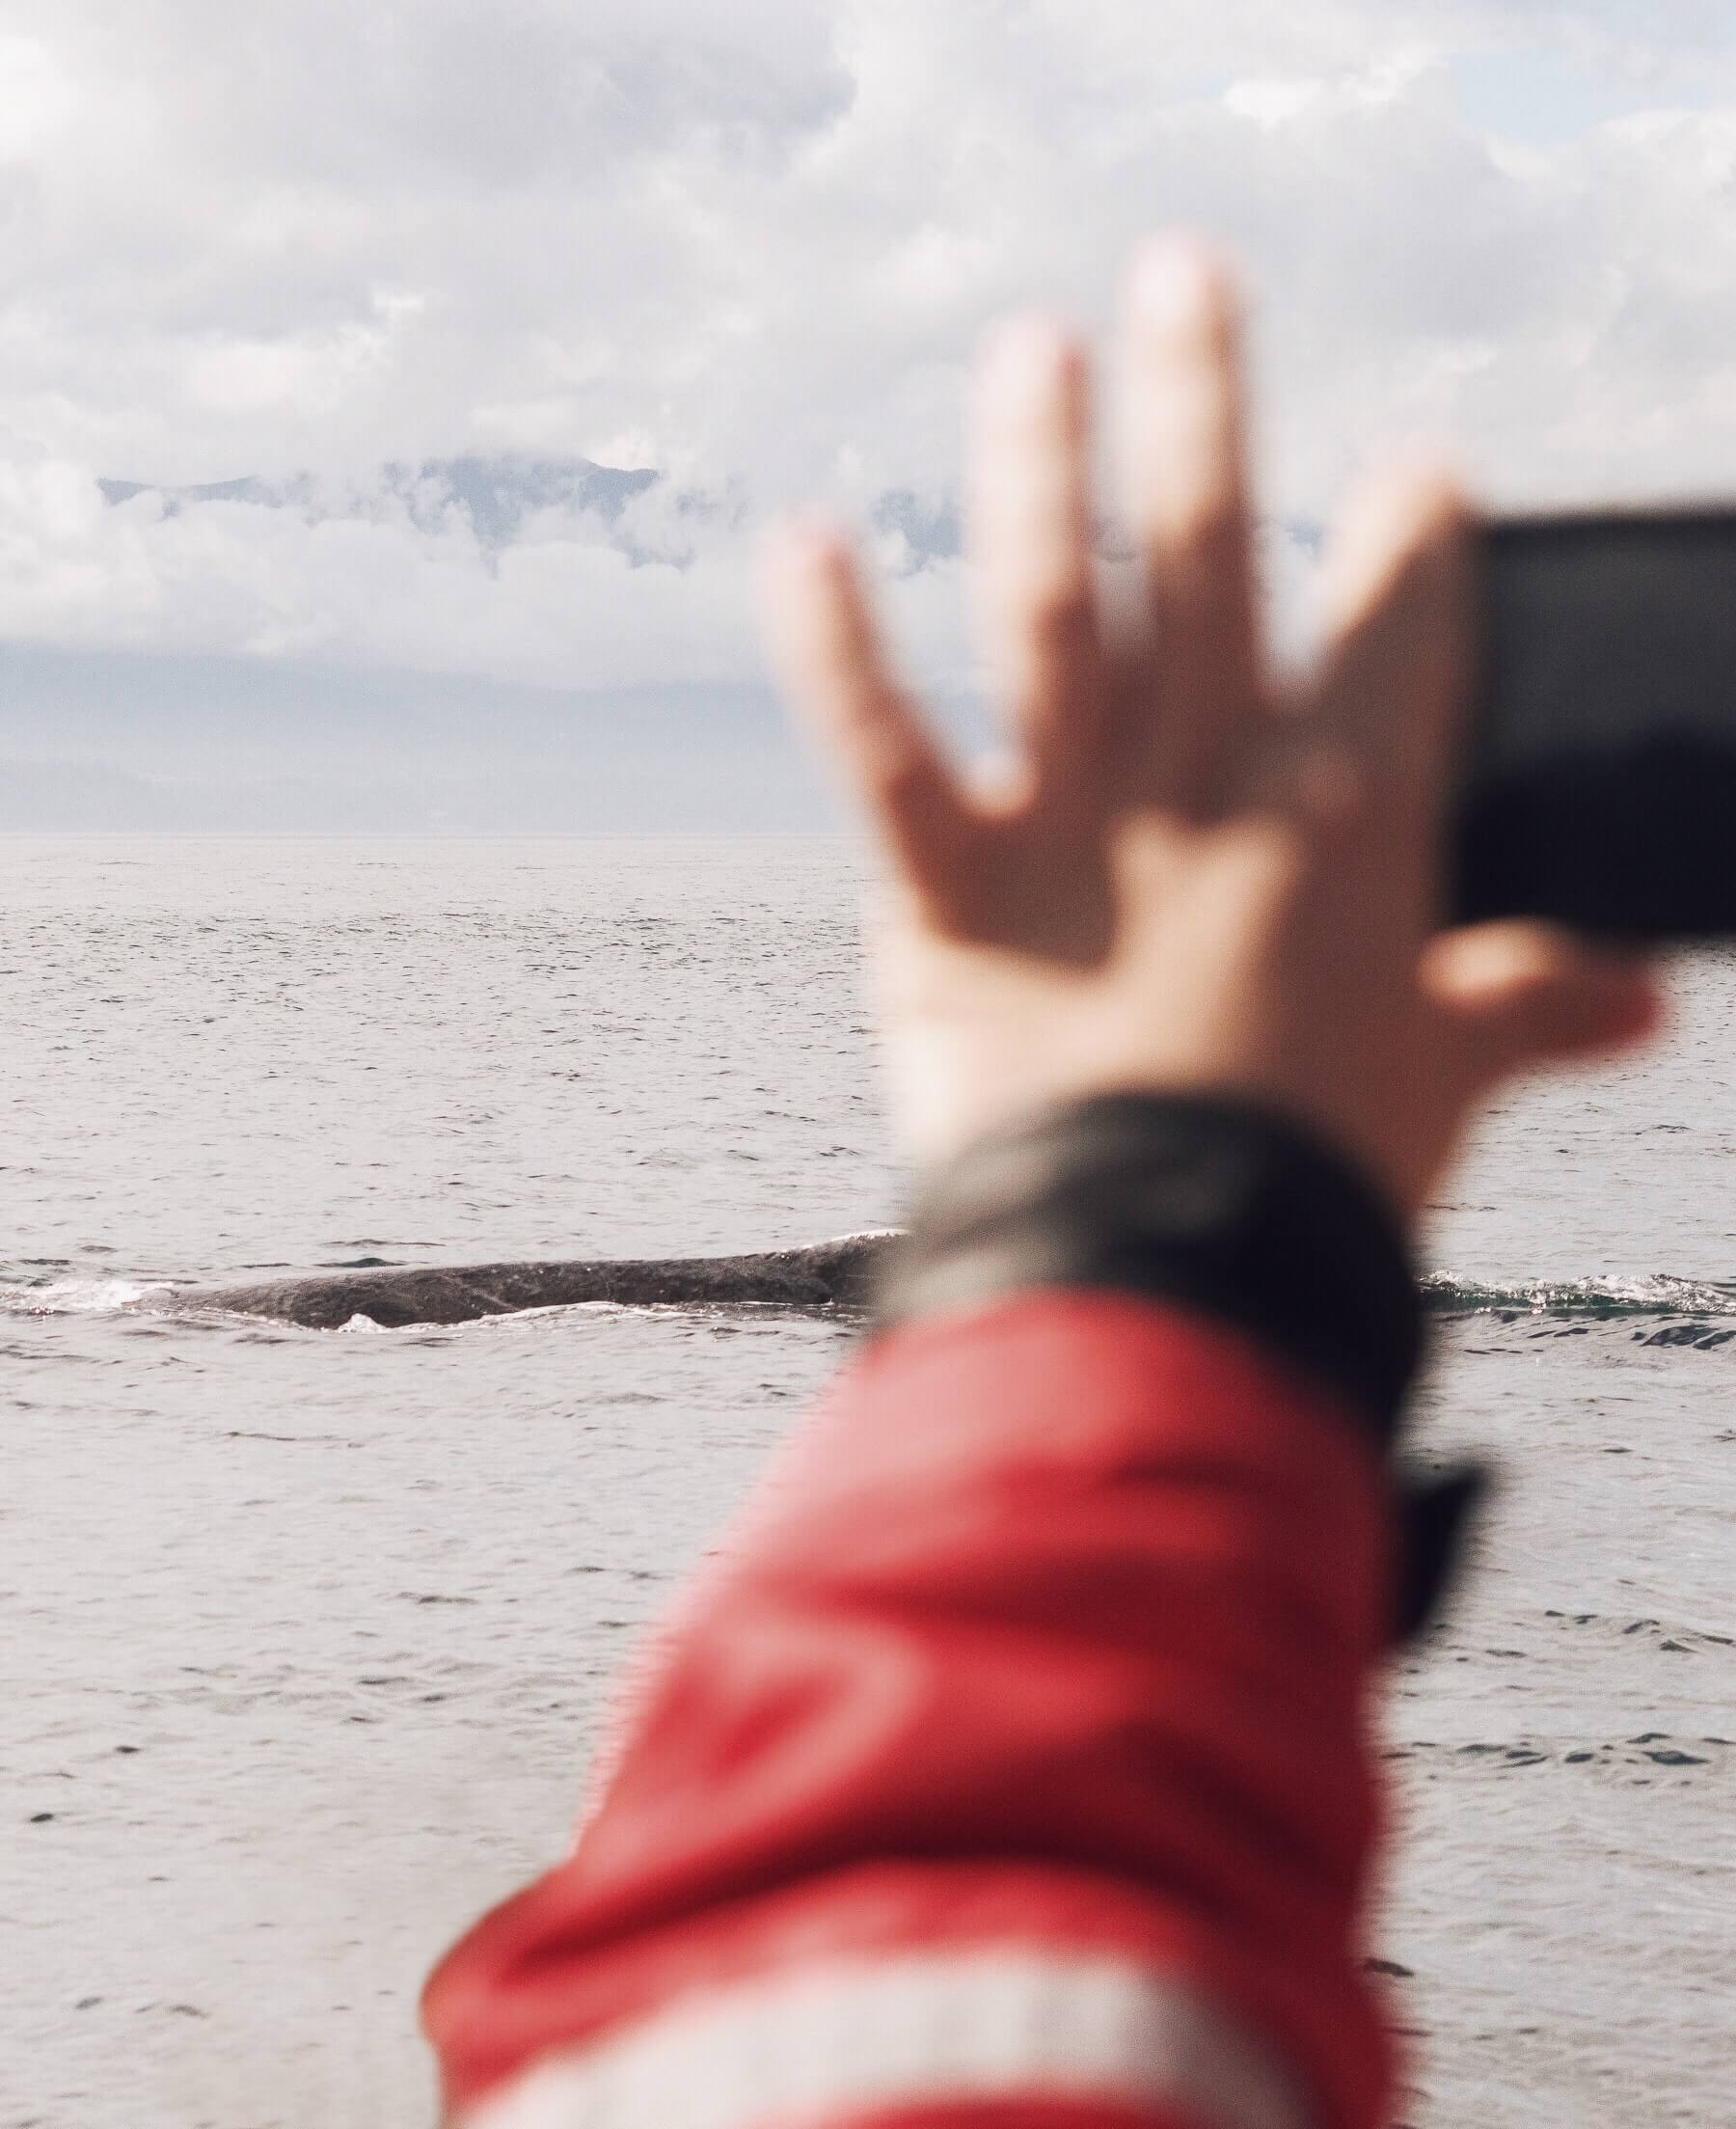 Hand holding a phone up and taking a photo of a whale breaching in the water just a few metres away